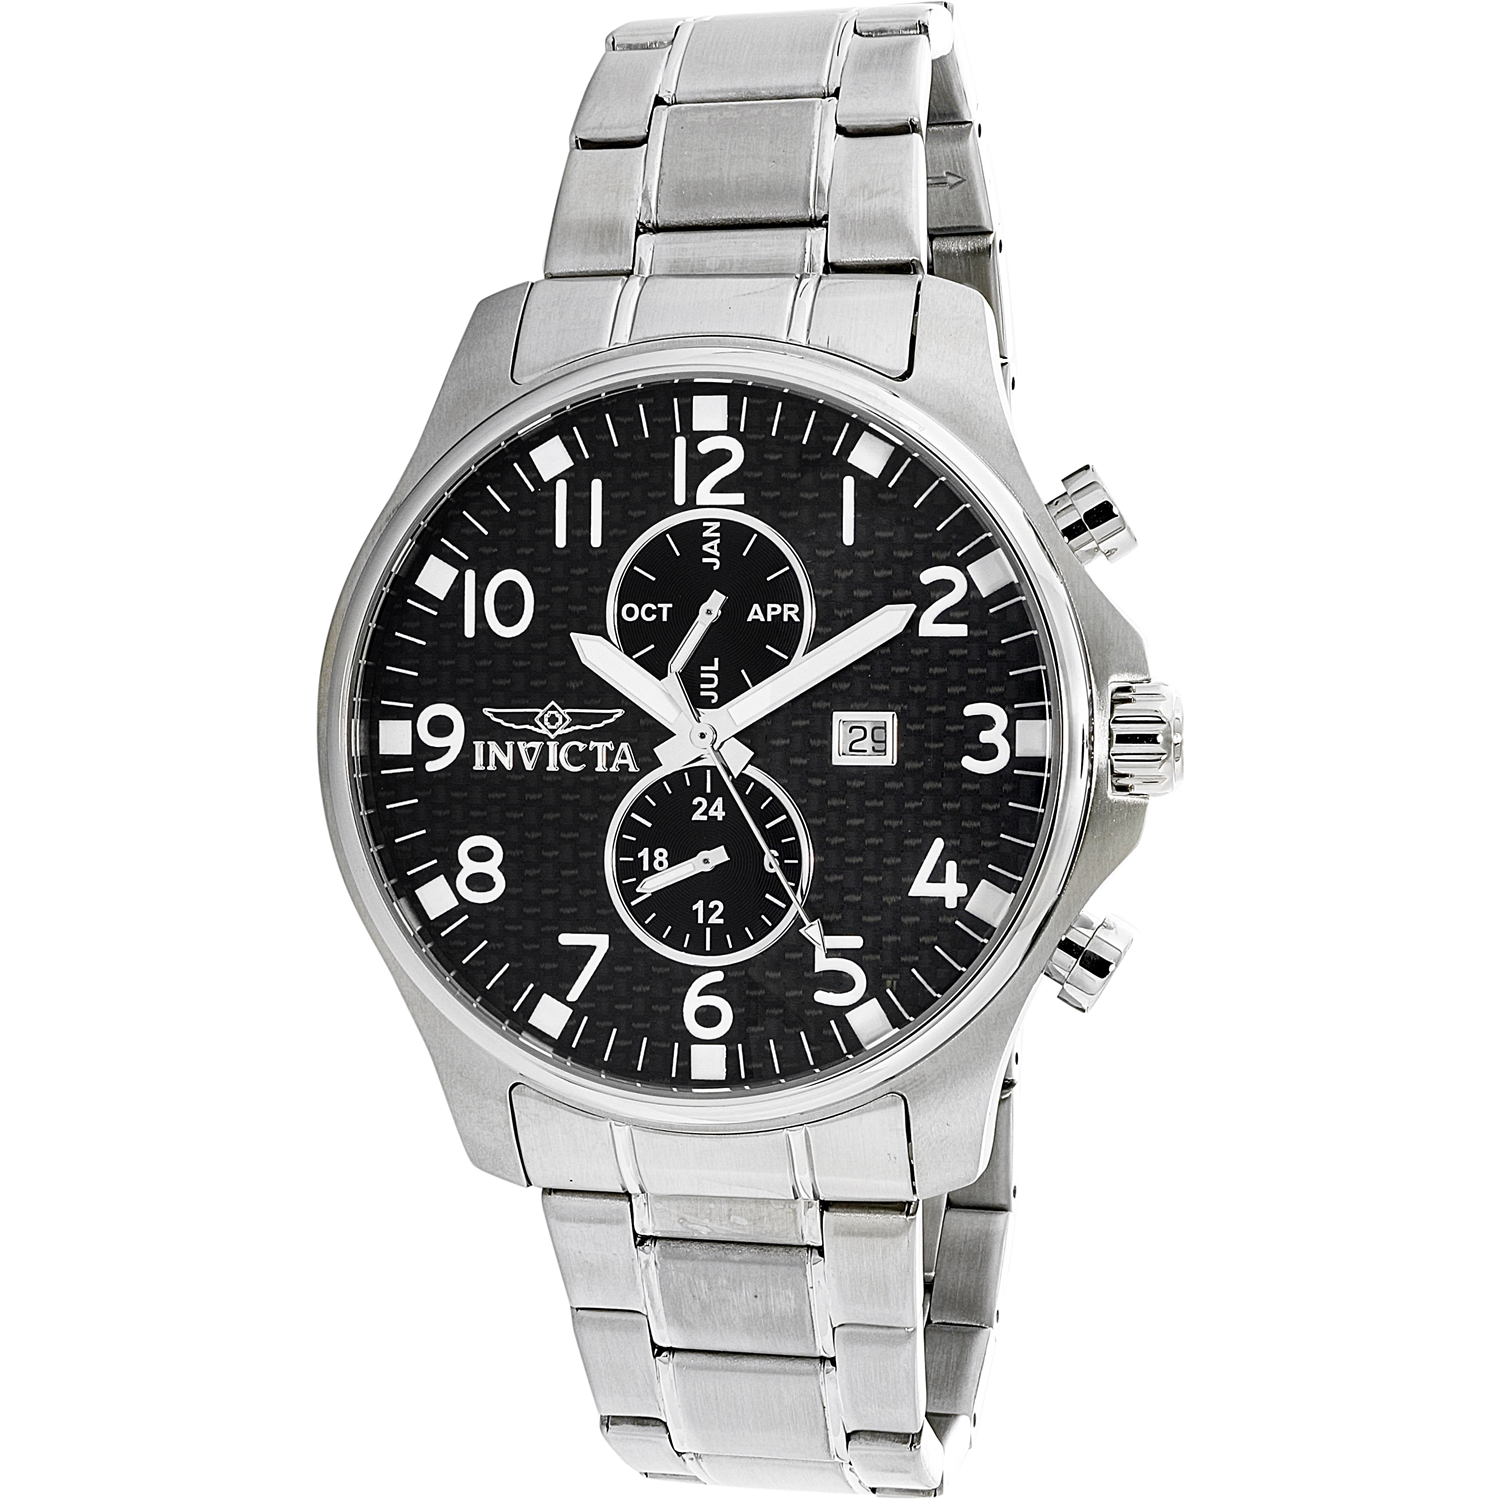 Invicta Men's Specialty 0379 Silver Stainless-Steel Plated Swiss Quartz Dress Watch